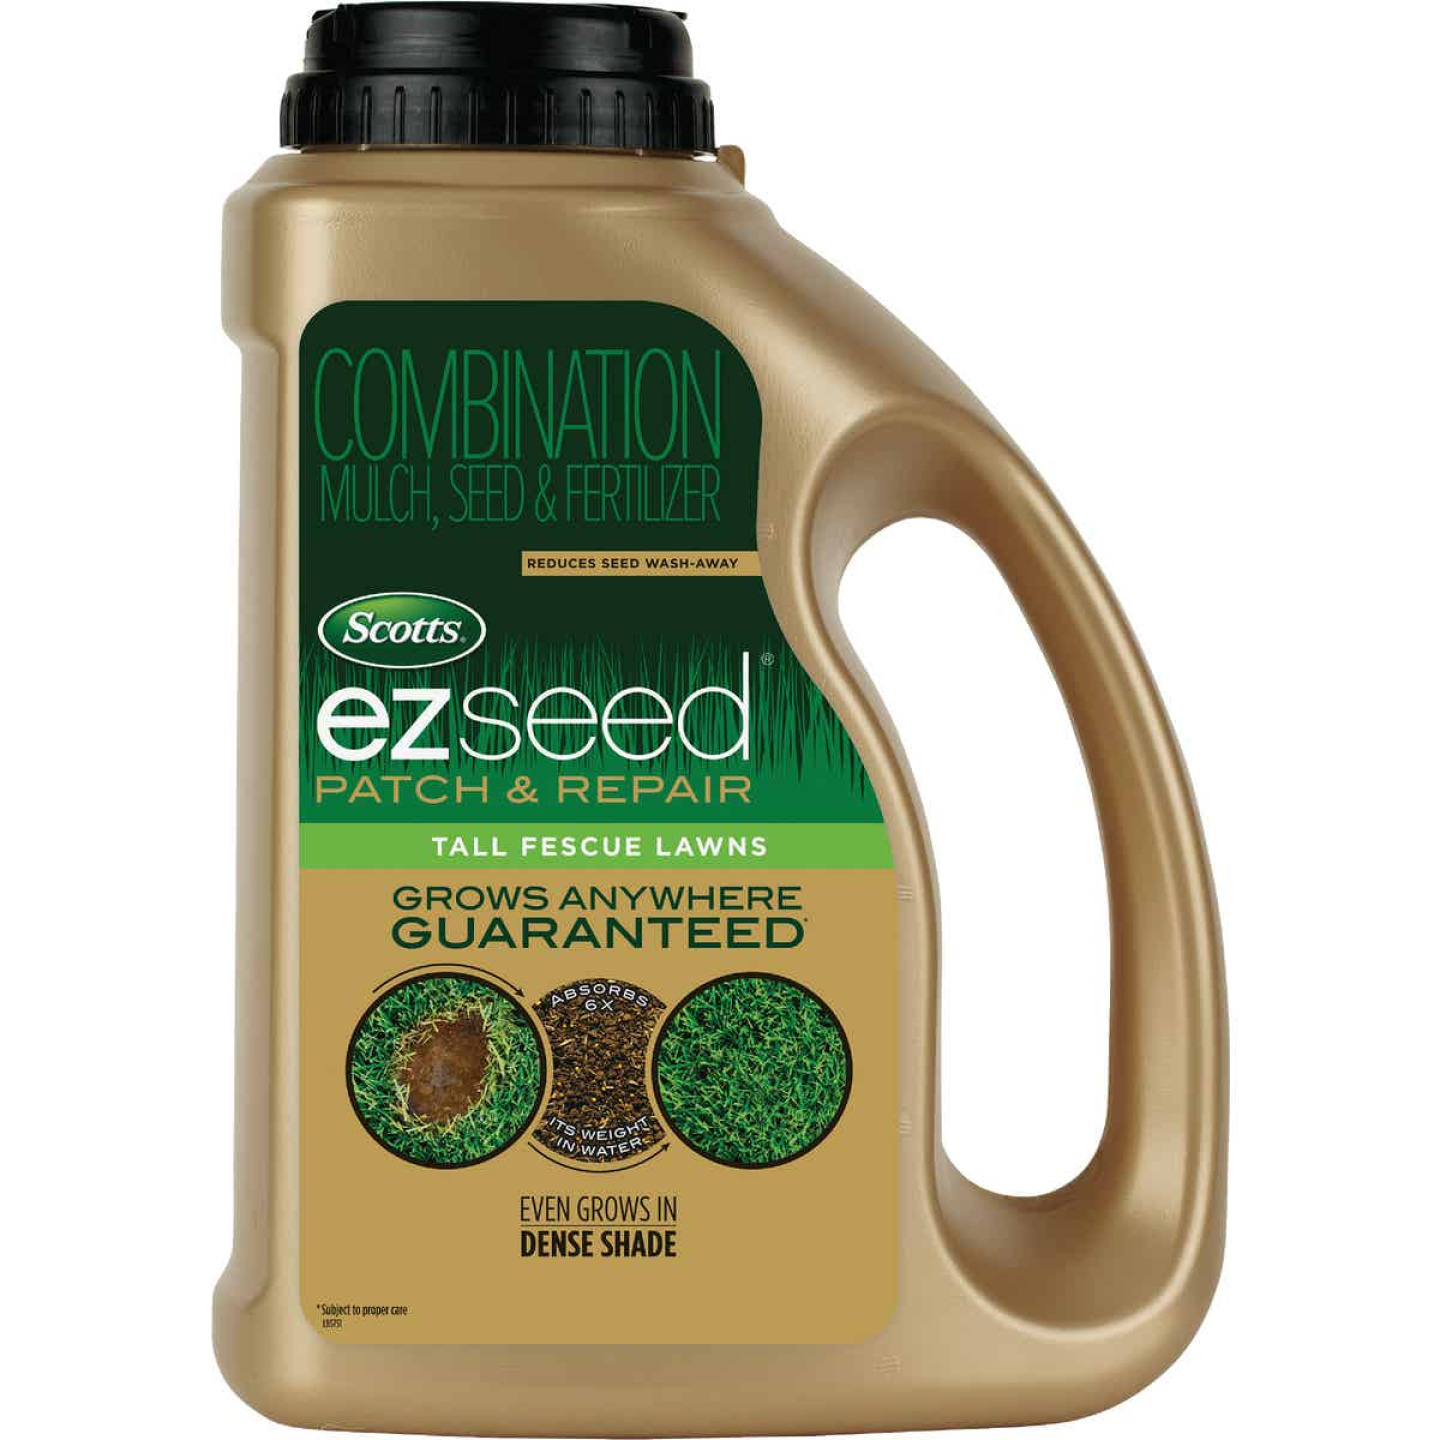 Scotts eZ Seed 3.75 Lb. 85 Sq. Ft. Coverage Tall Fescue Grass Patch & Repair Image 1